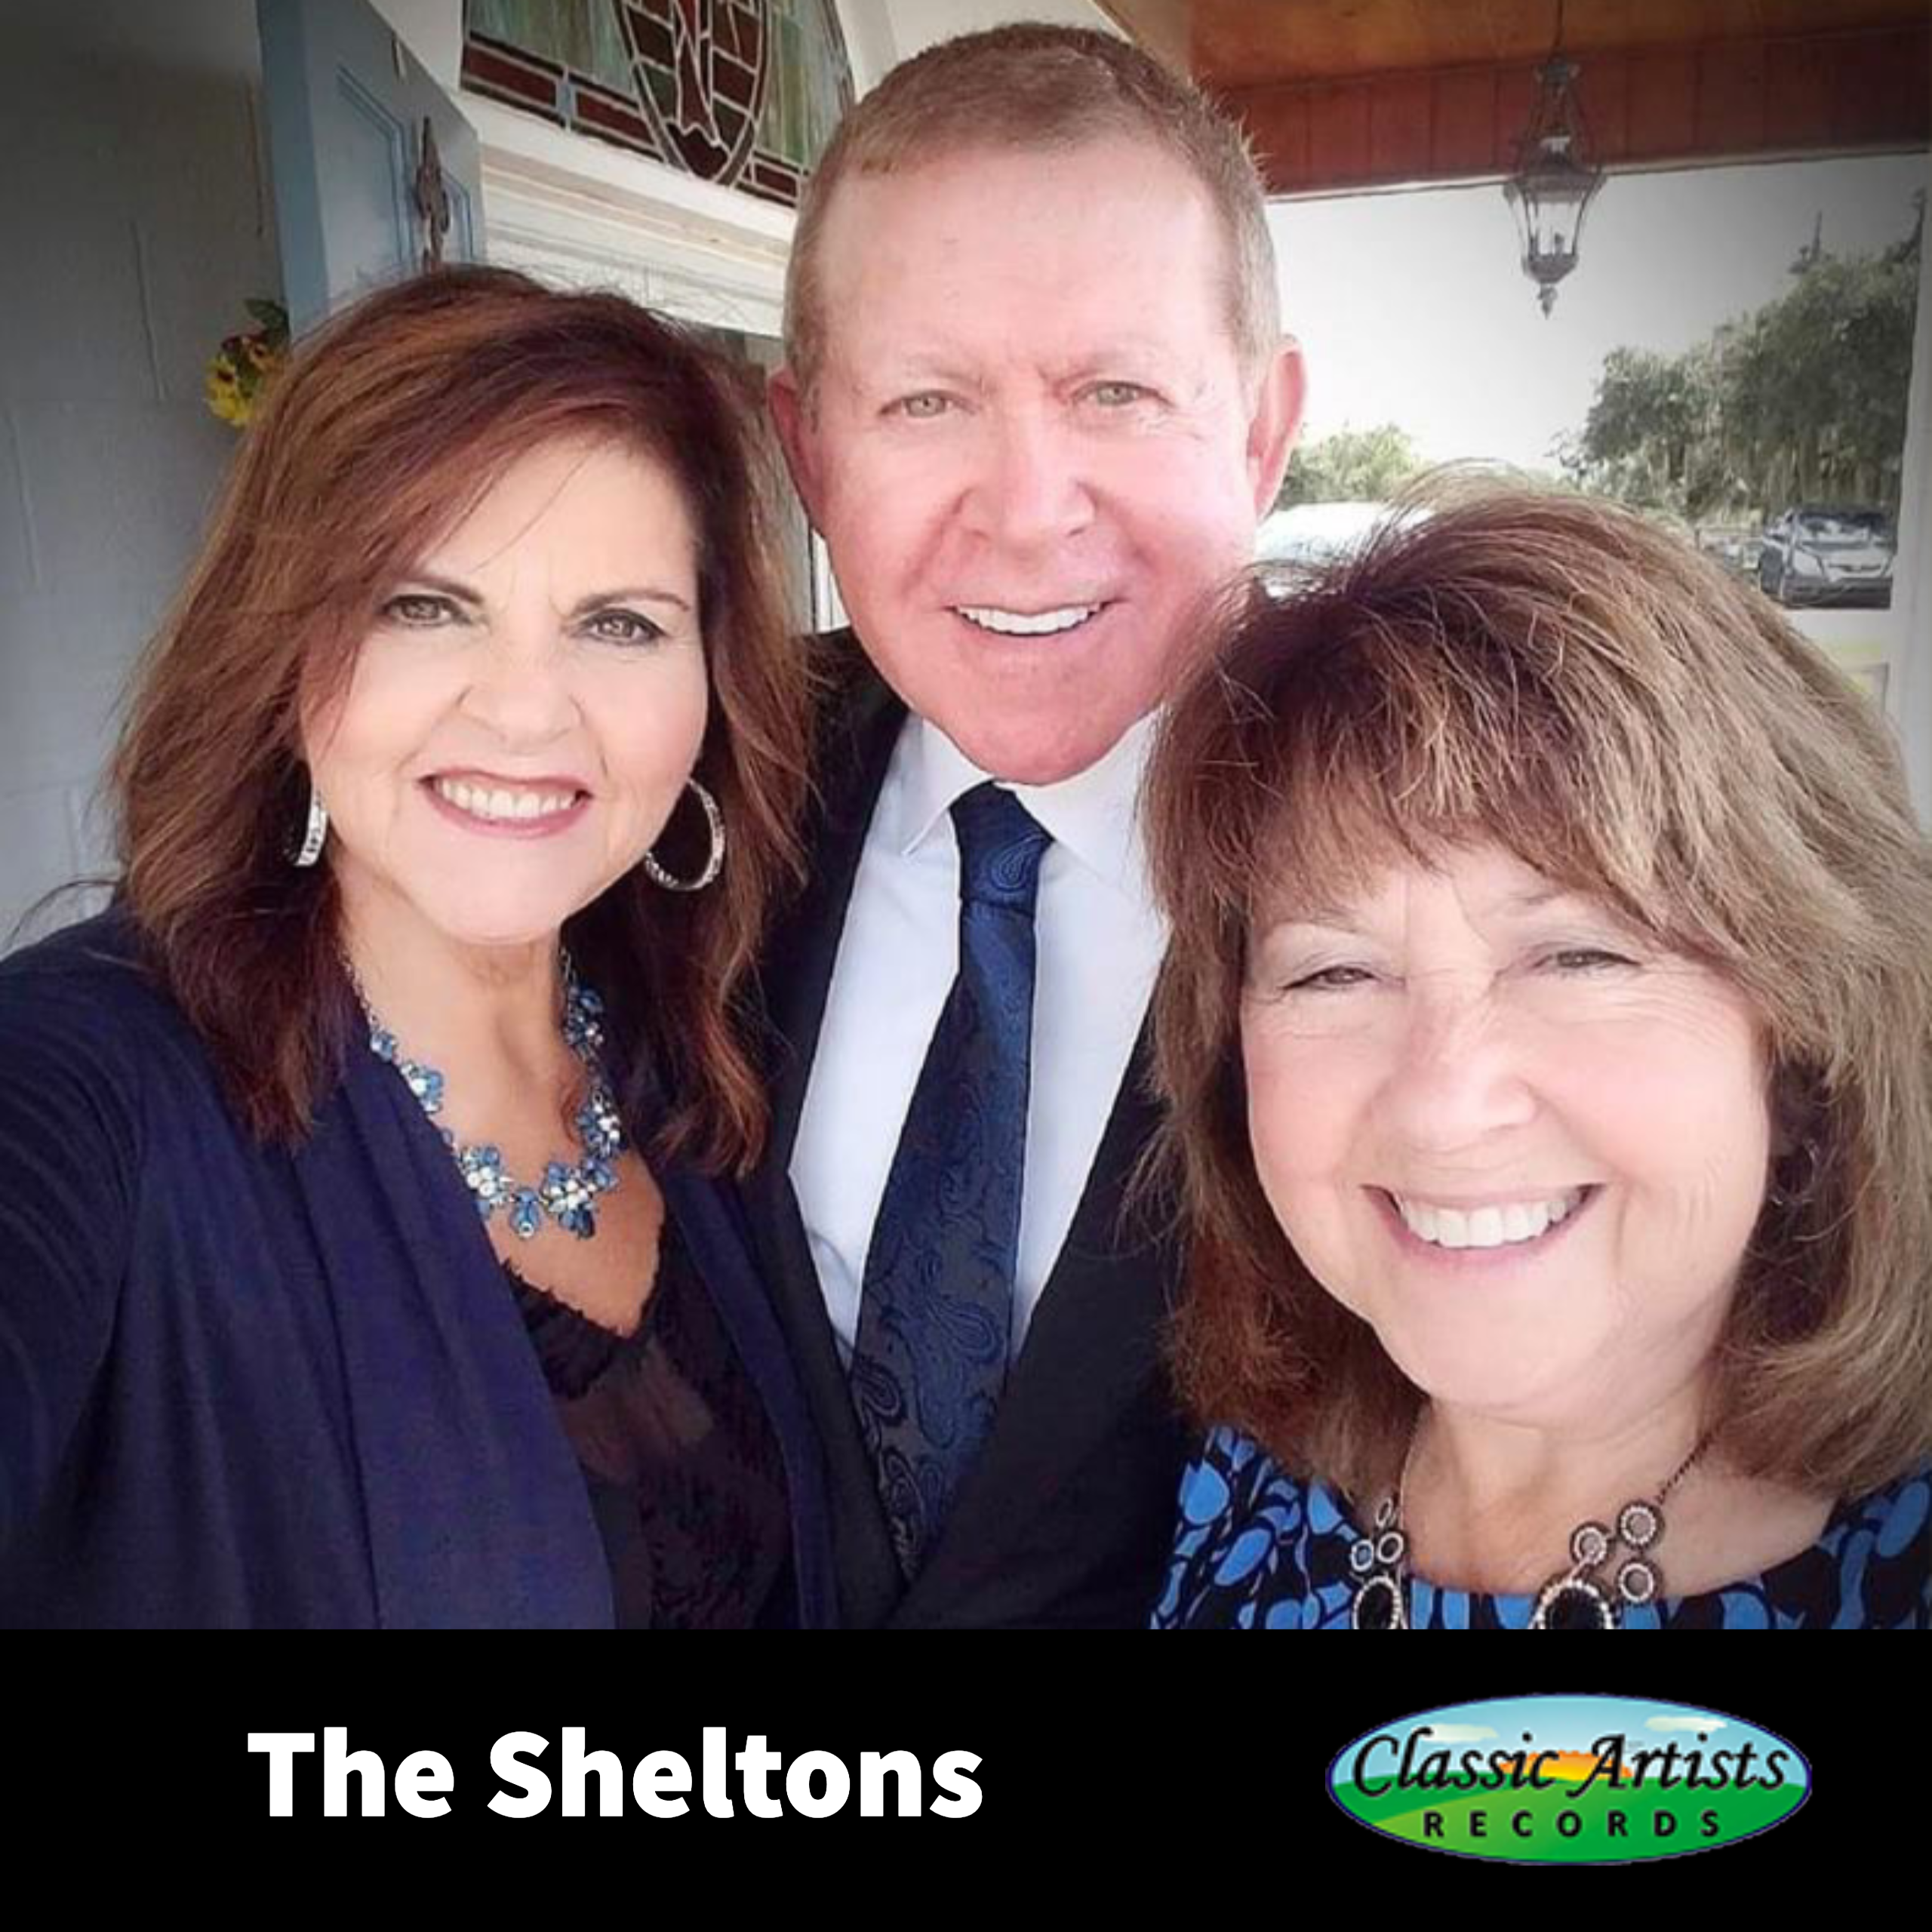 The Sheltons